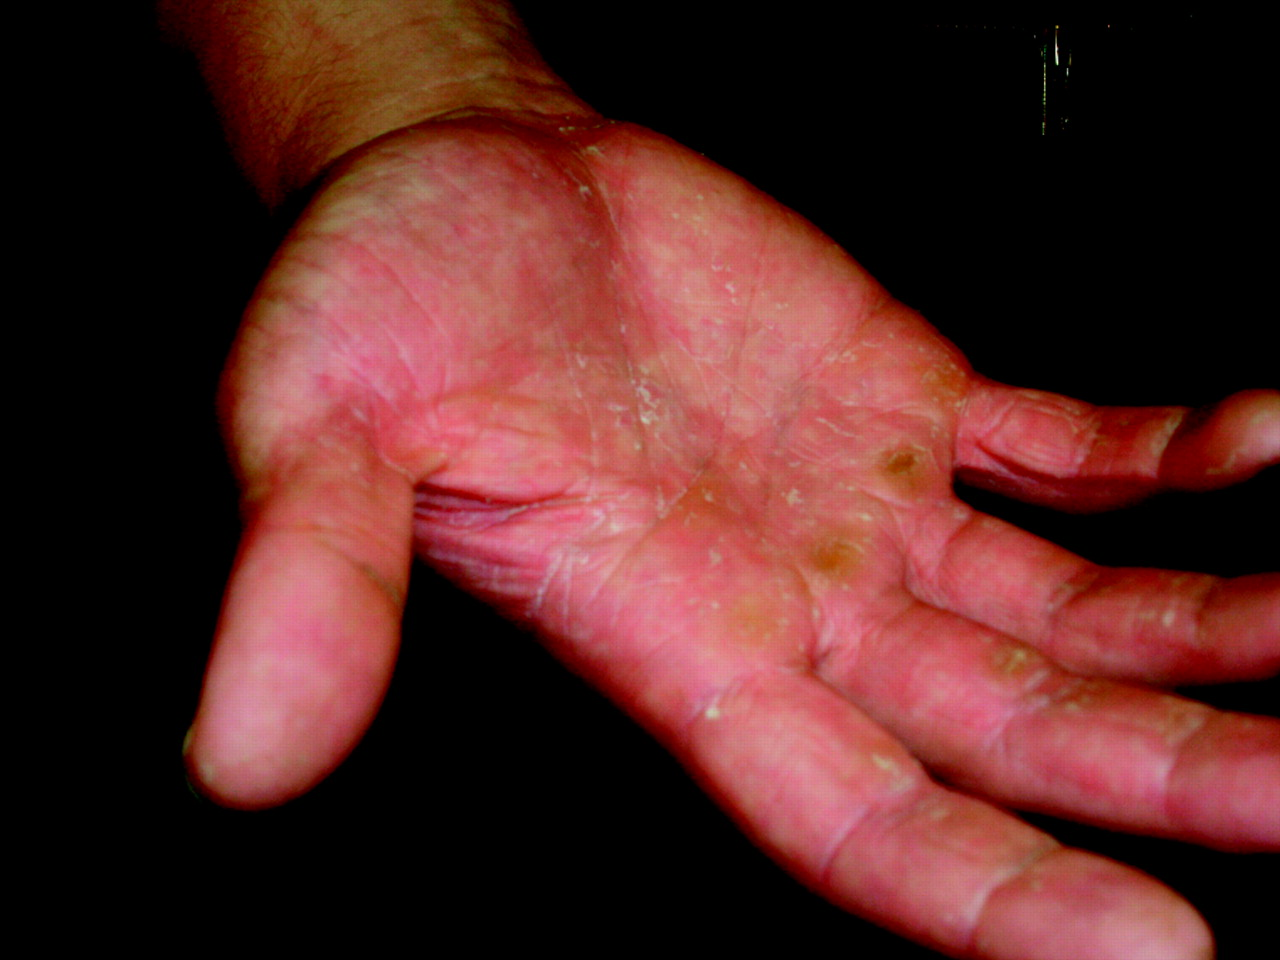 Hand Dermatitis: Review of Etiology, Diagnosis, and